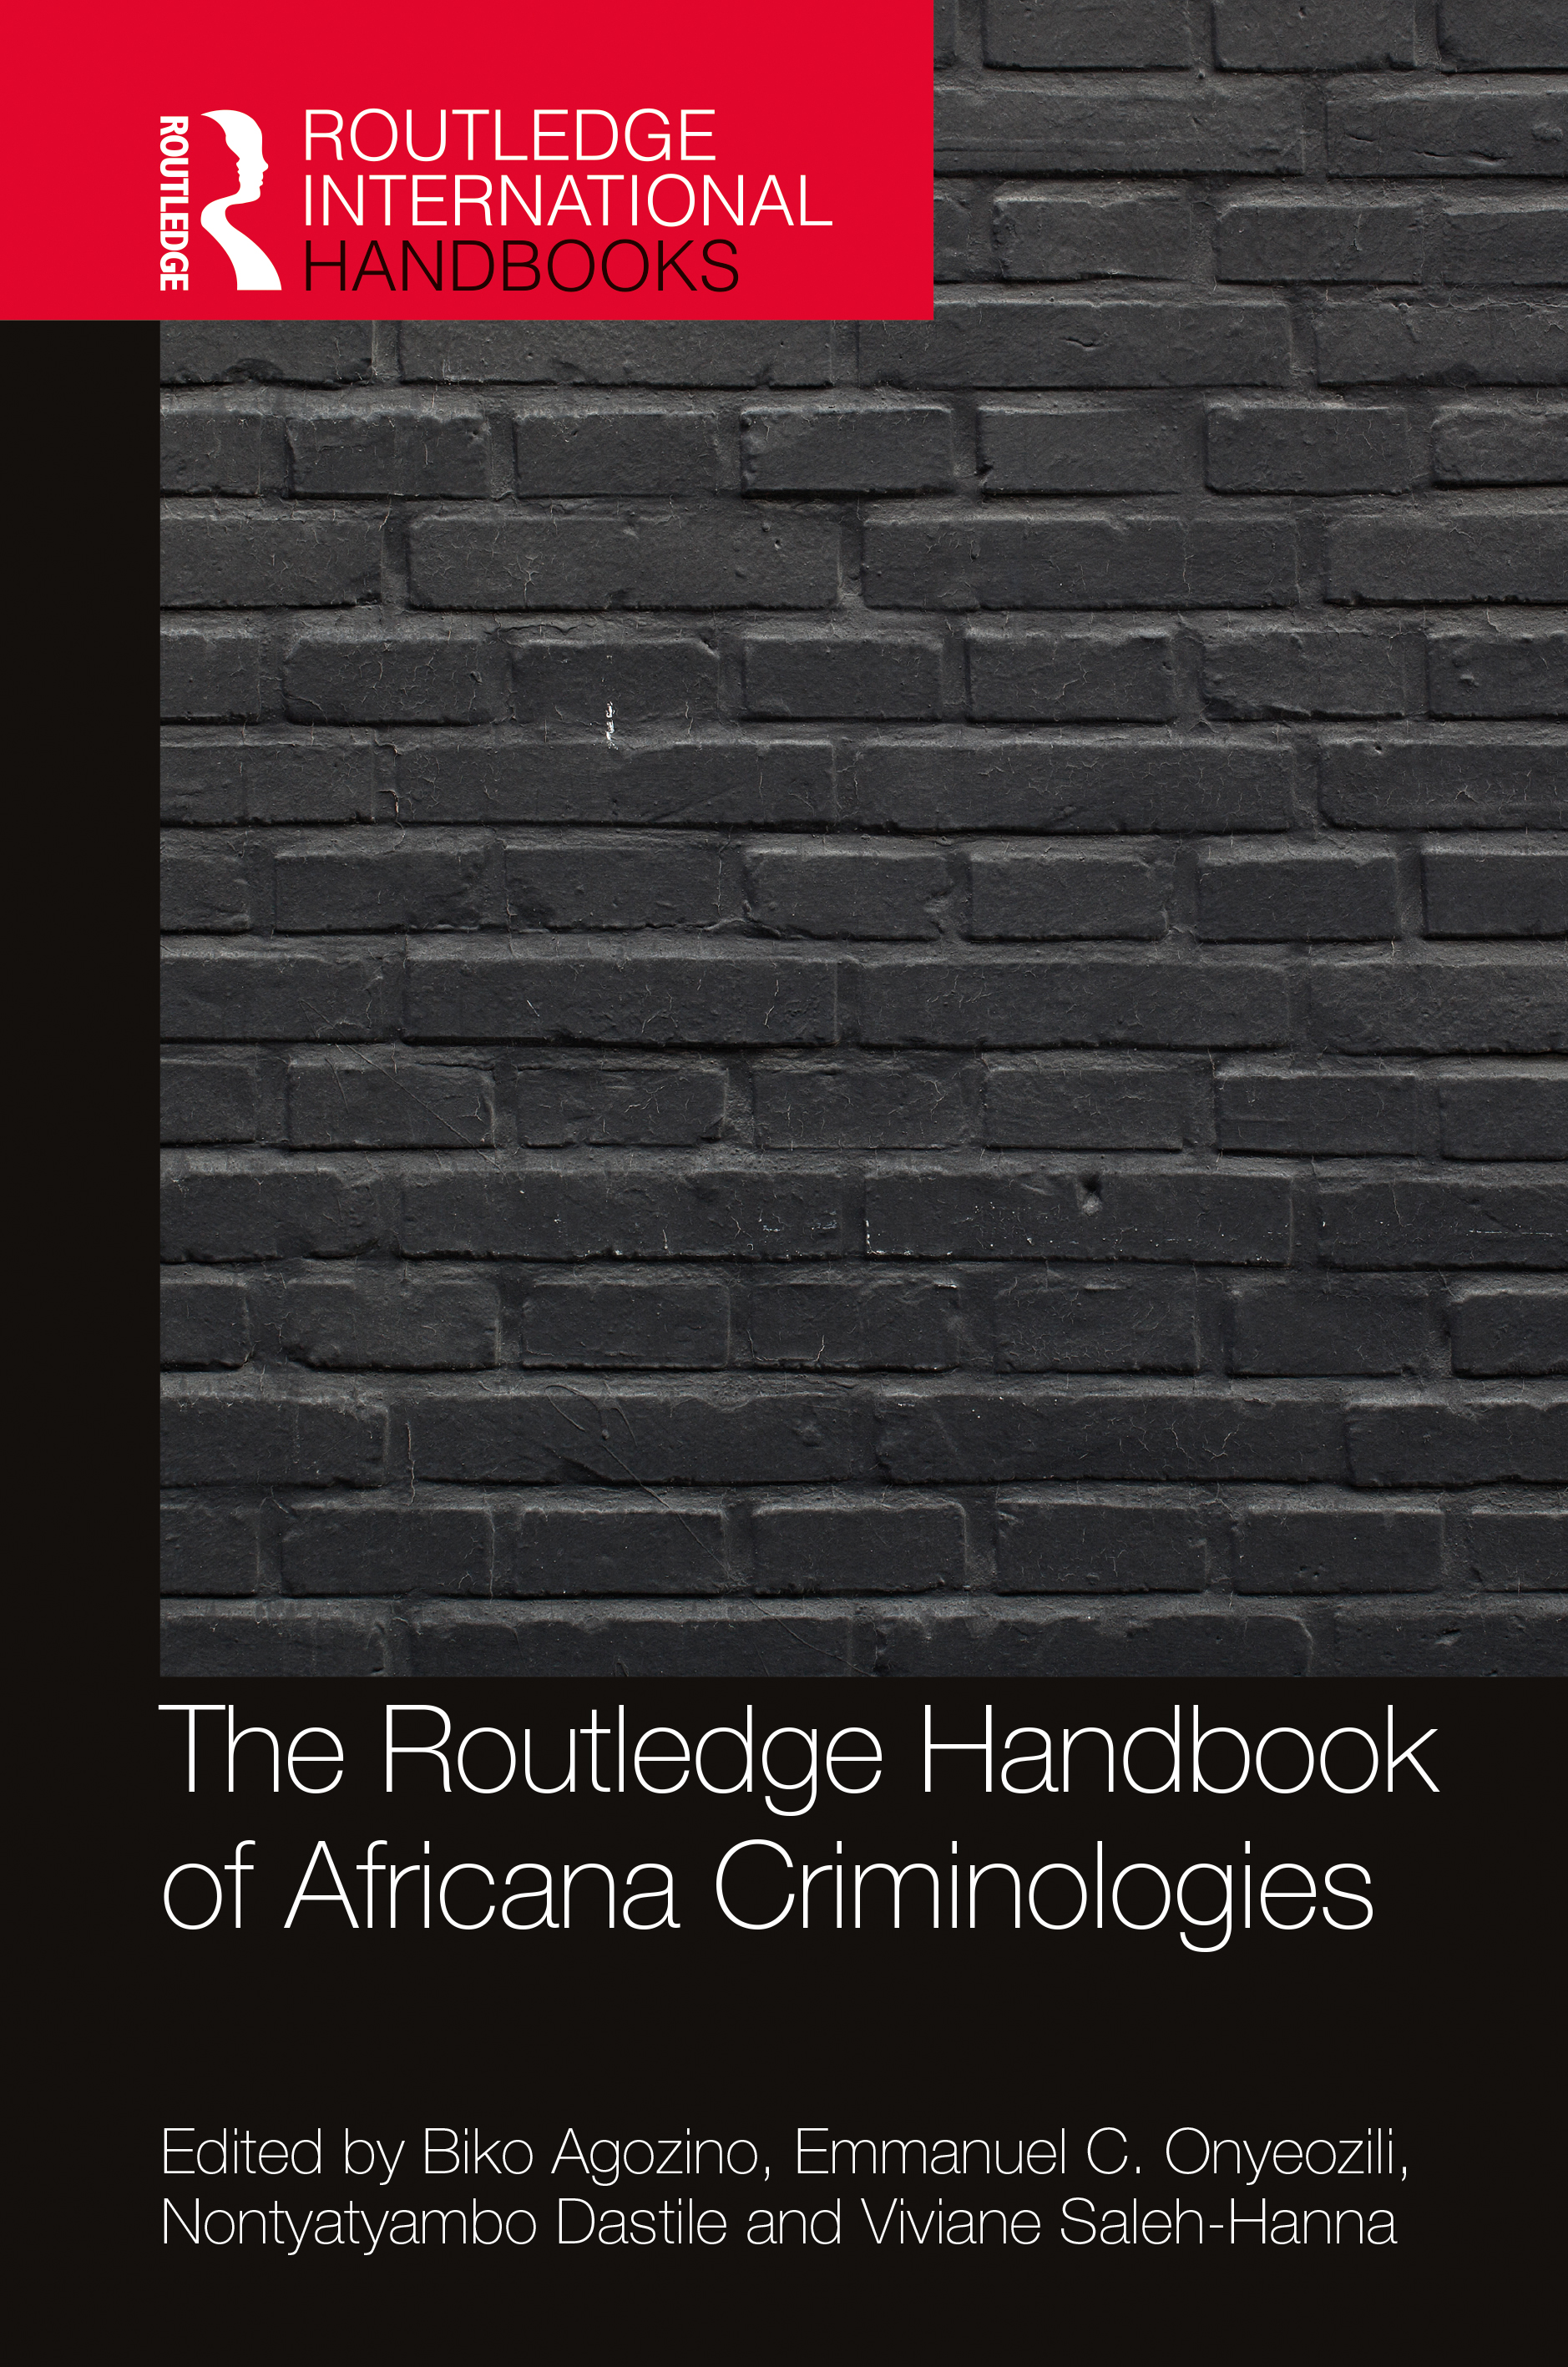 The Criminalization of People of African Descent in Brazil